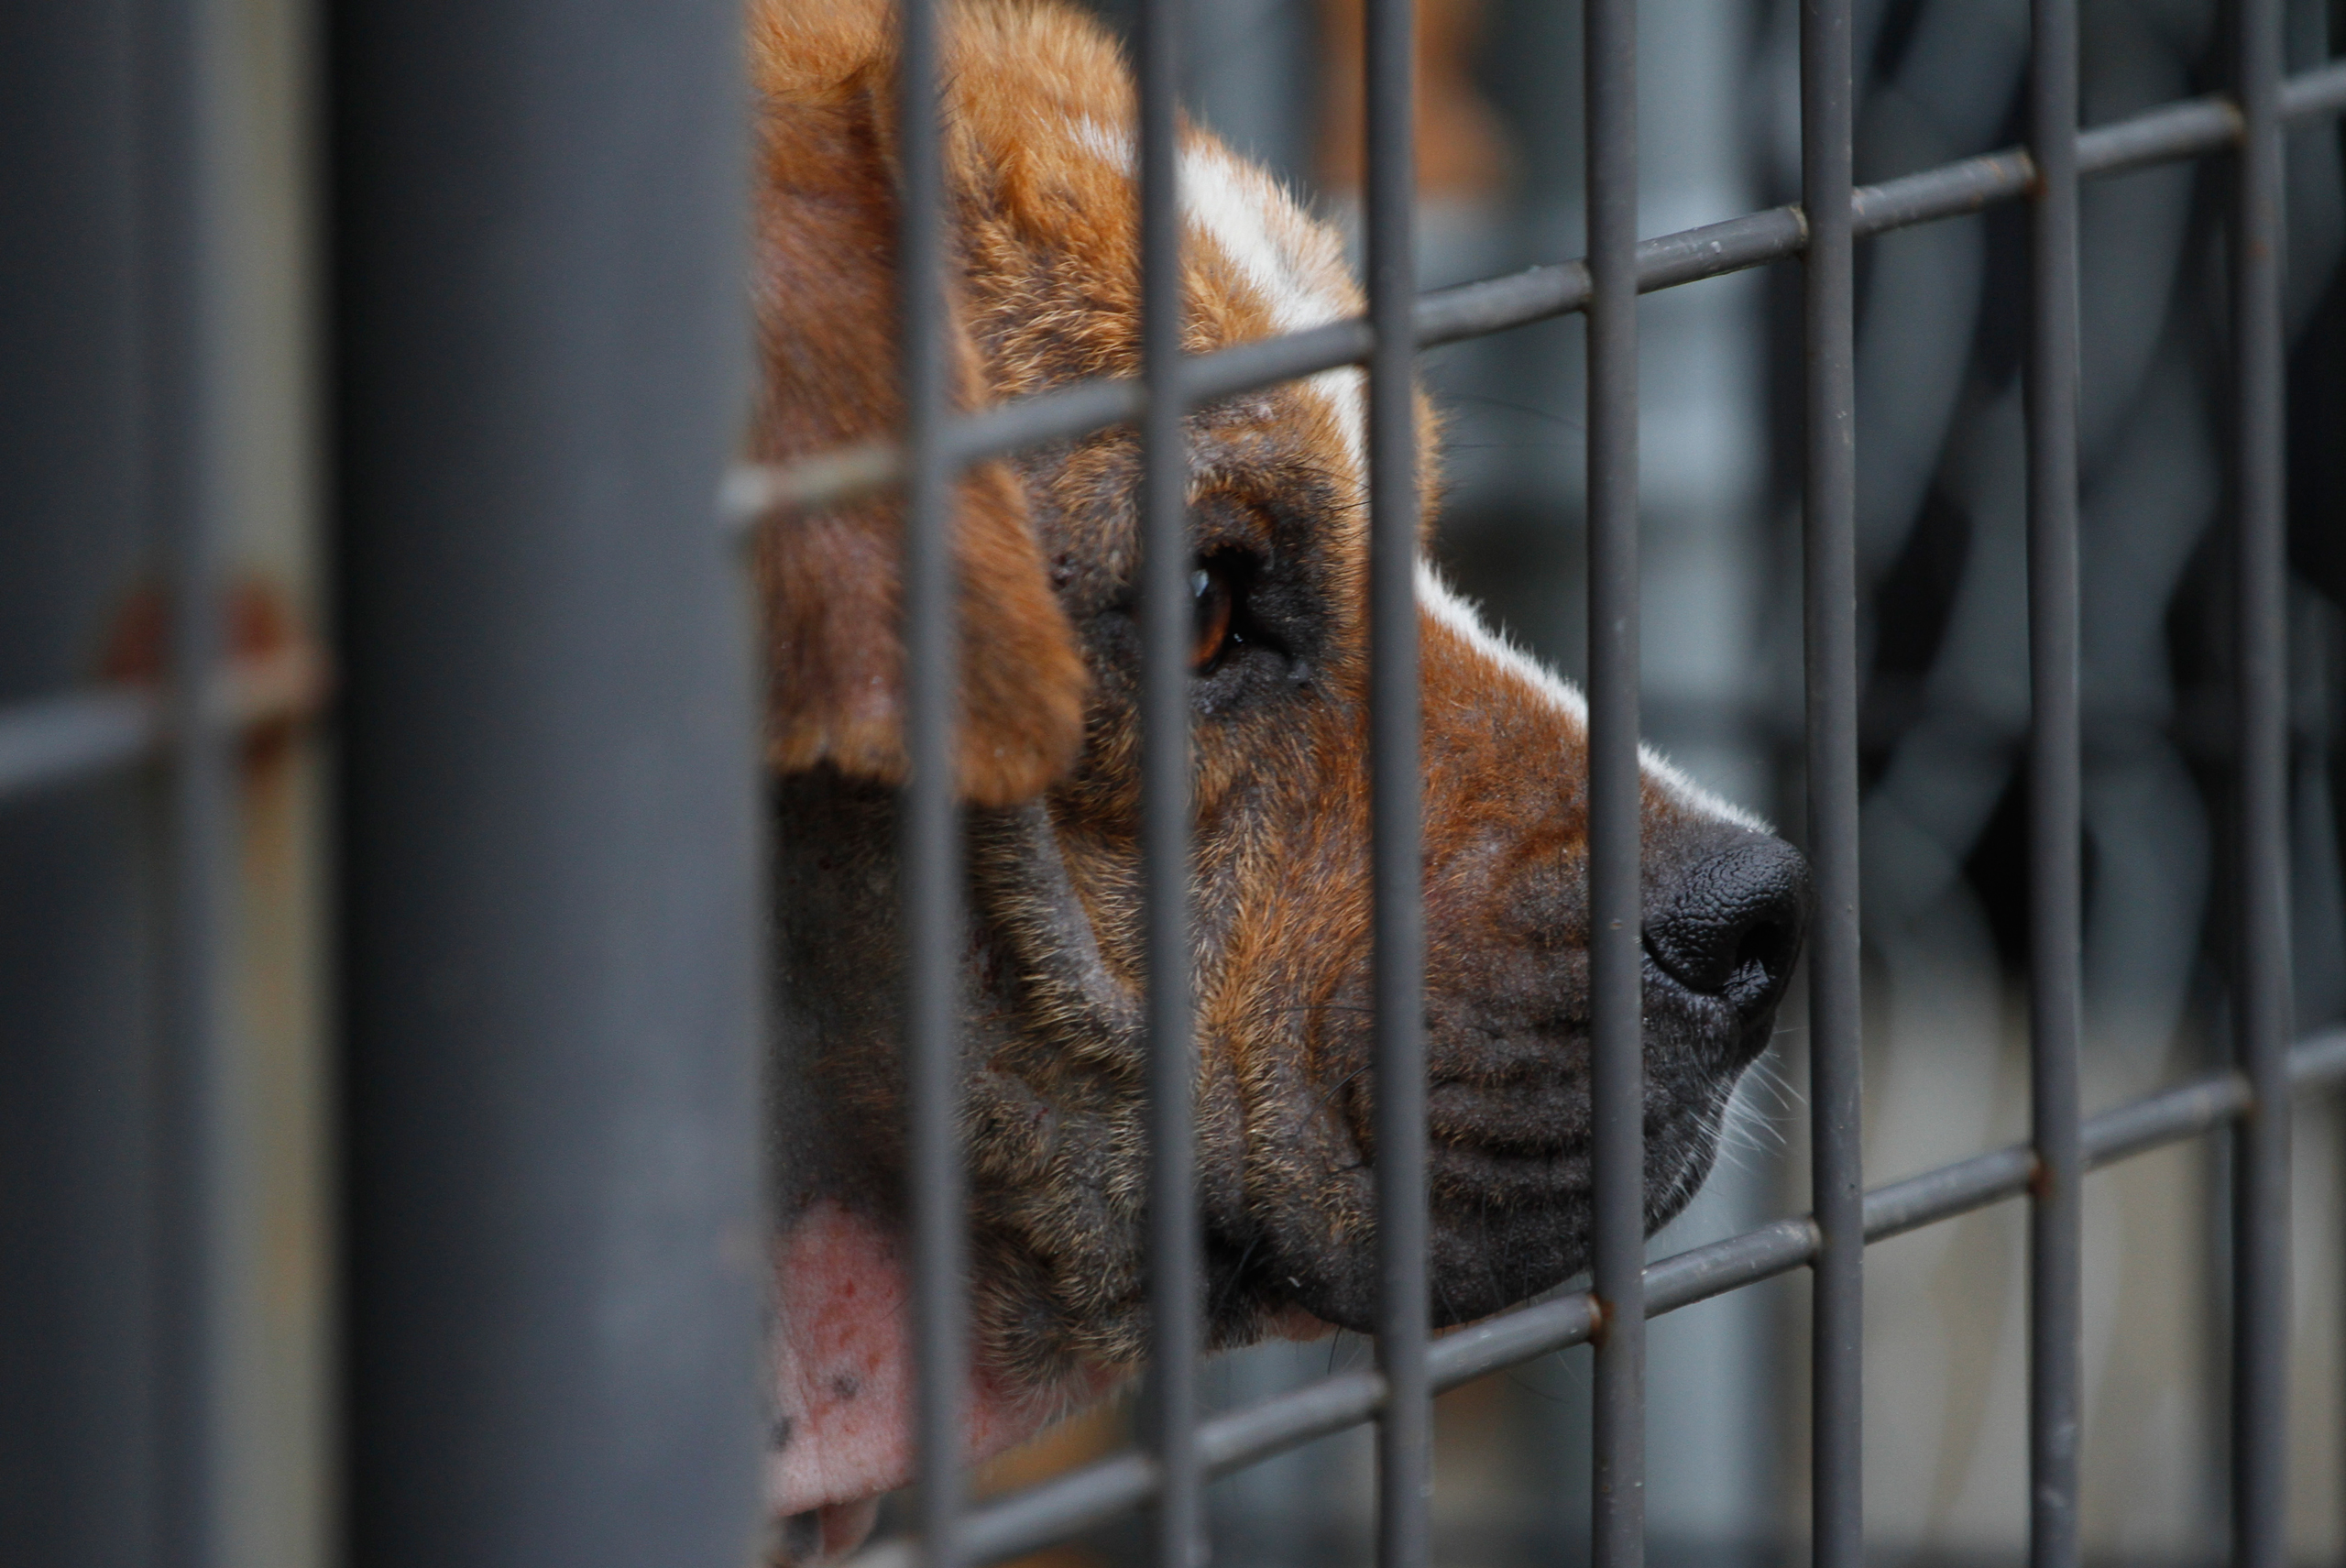 A recently rescued quarantined dog that is suffering from mange looks out of its cage at the Pet Placement Center in Red Bank, Tenn., on June 13, 2014.